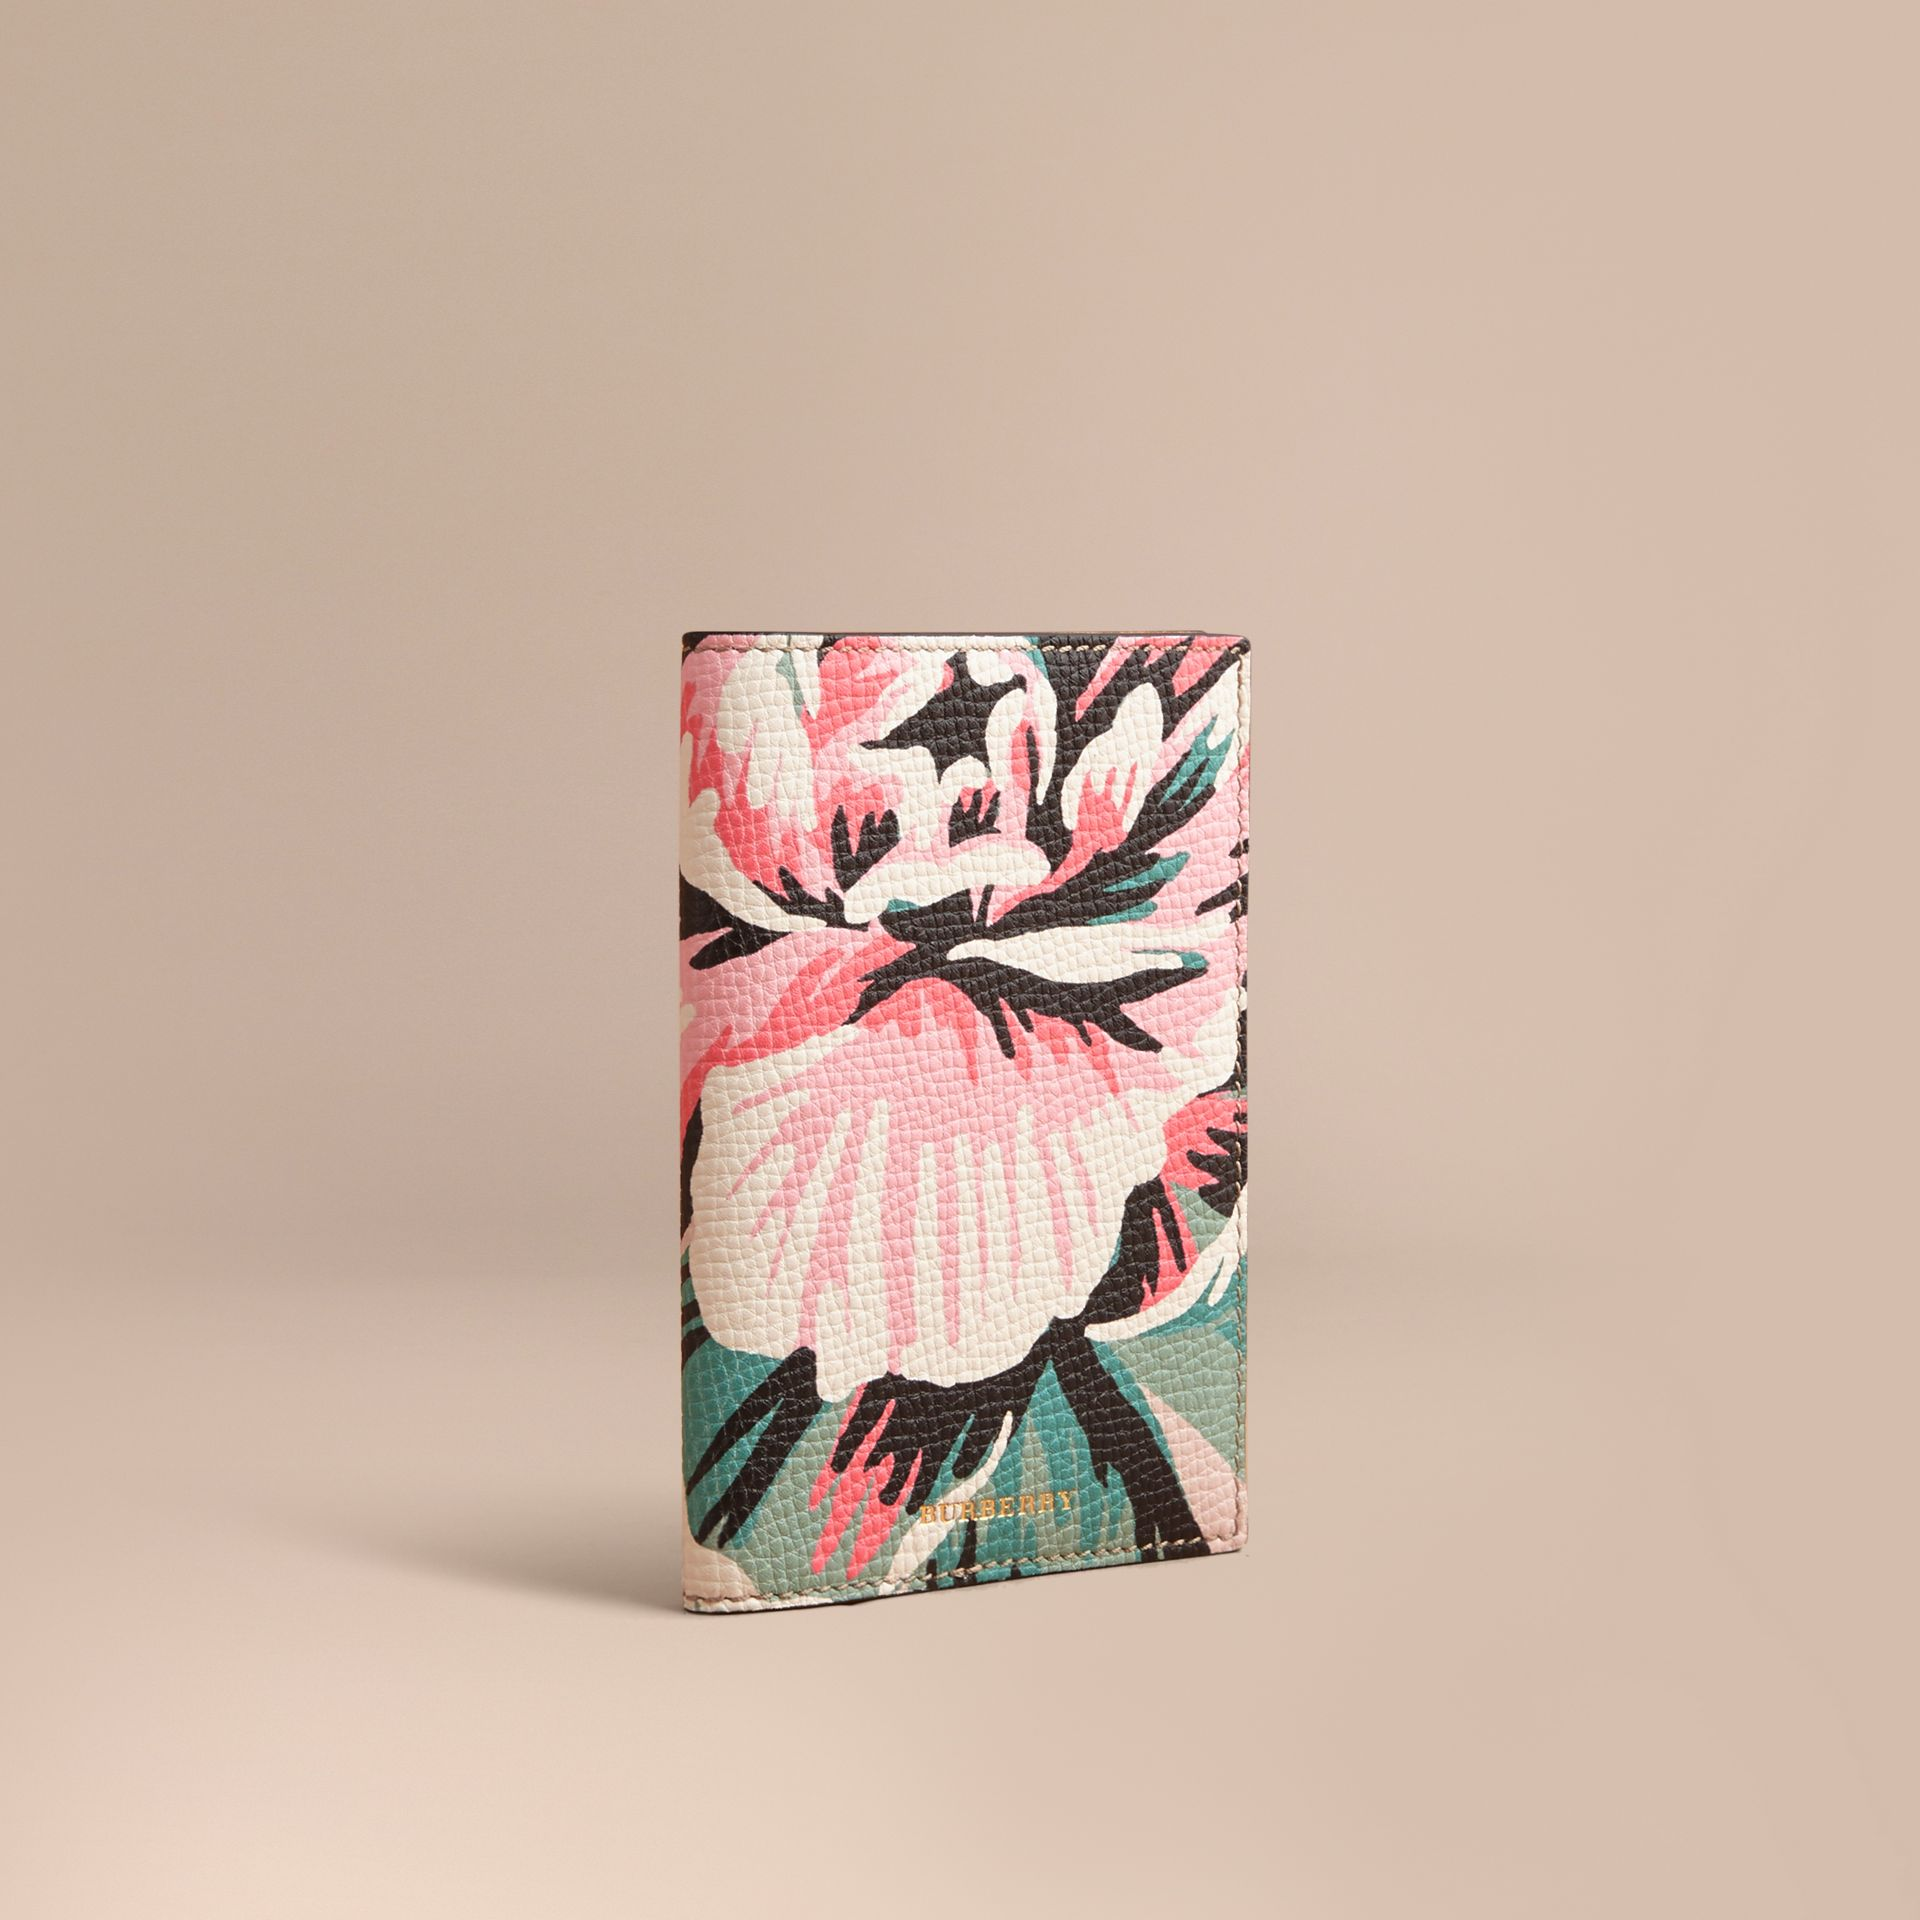 Peony Rose Print Leather Passport Cover in Natural / Emerald Green | Burberry - gallery image 1